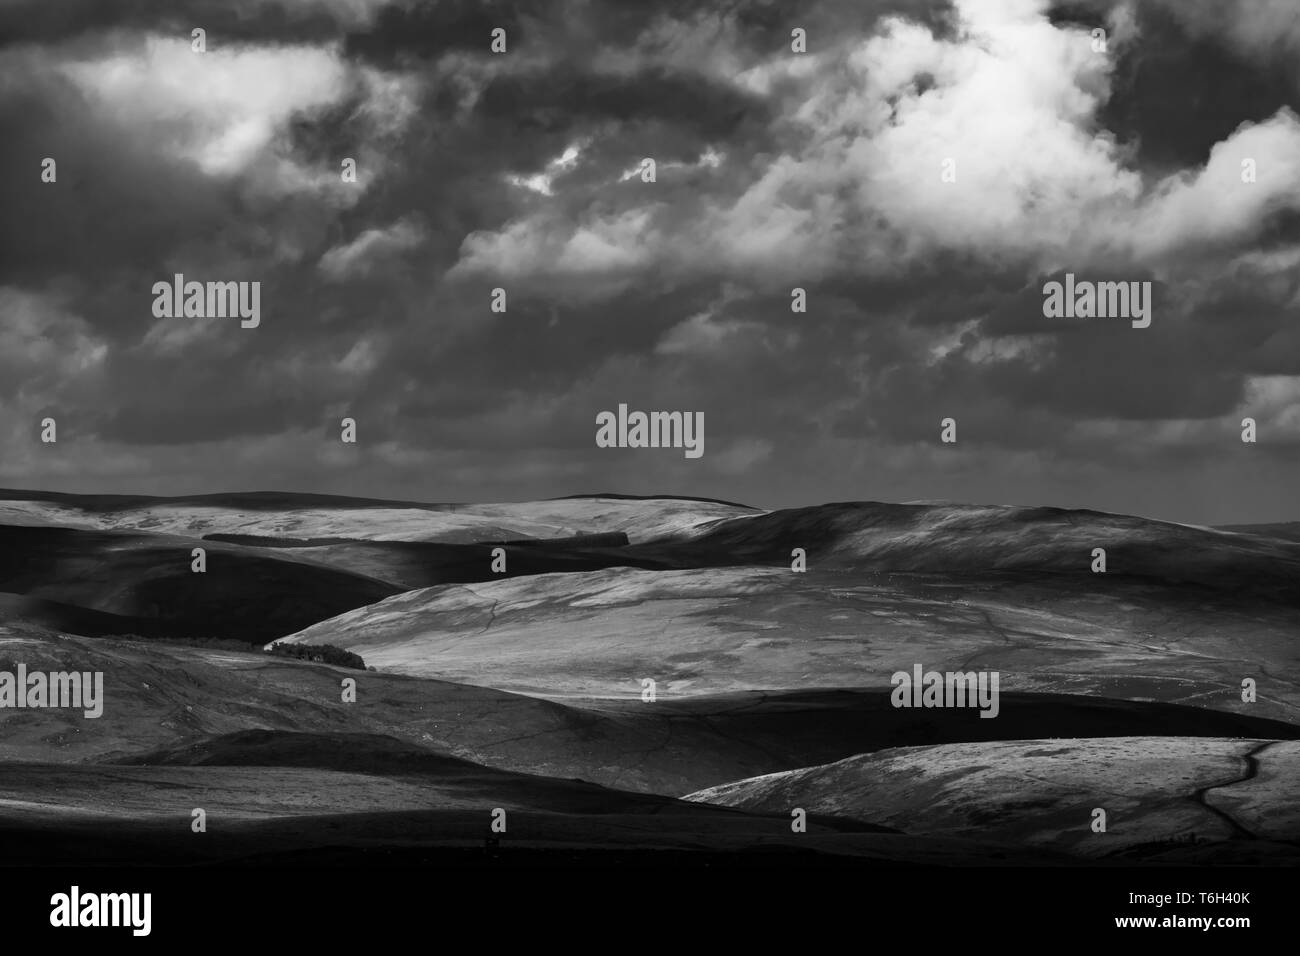 Curlew Black and White Stock Photos & Images - Alamy